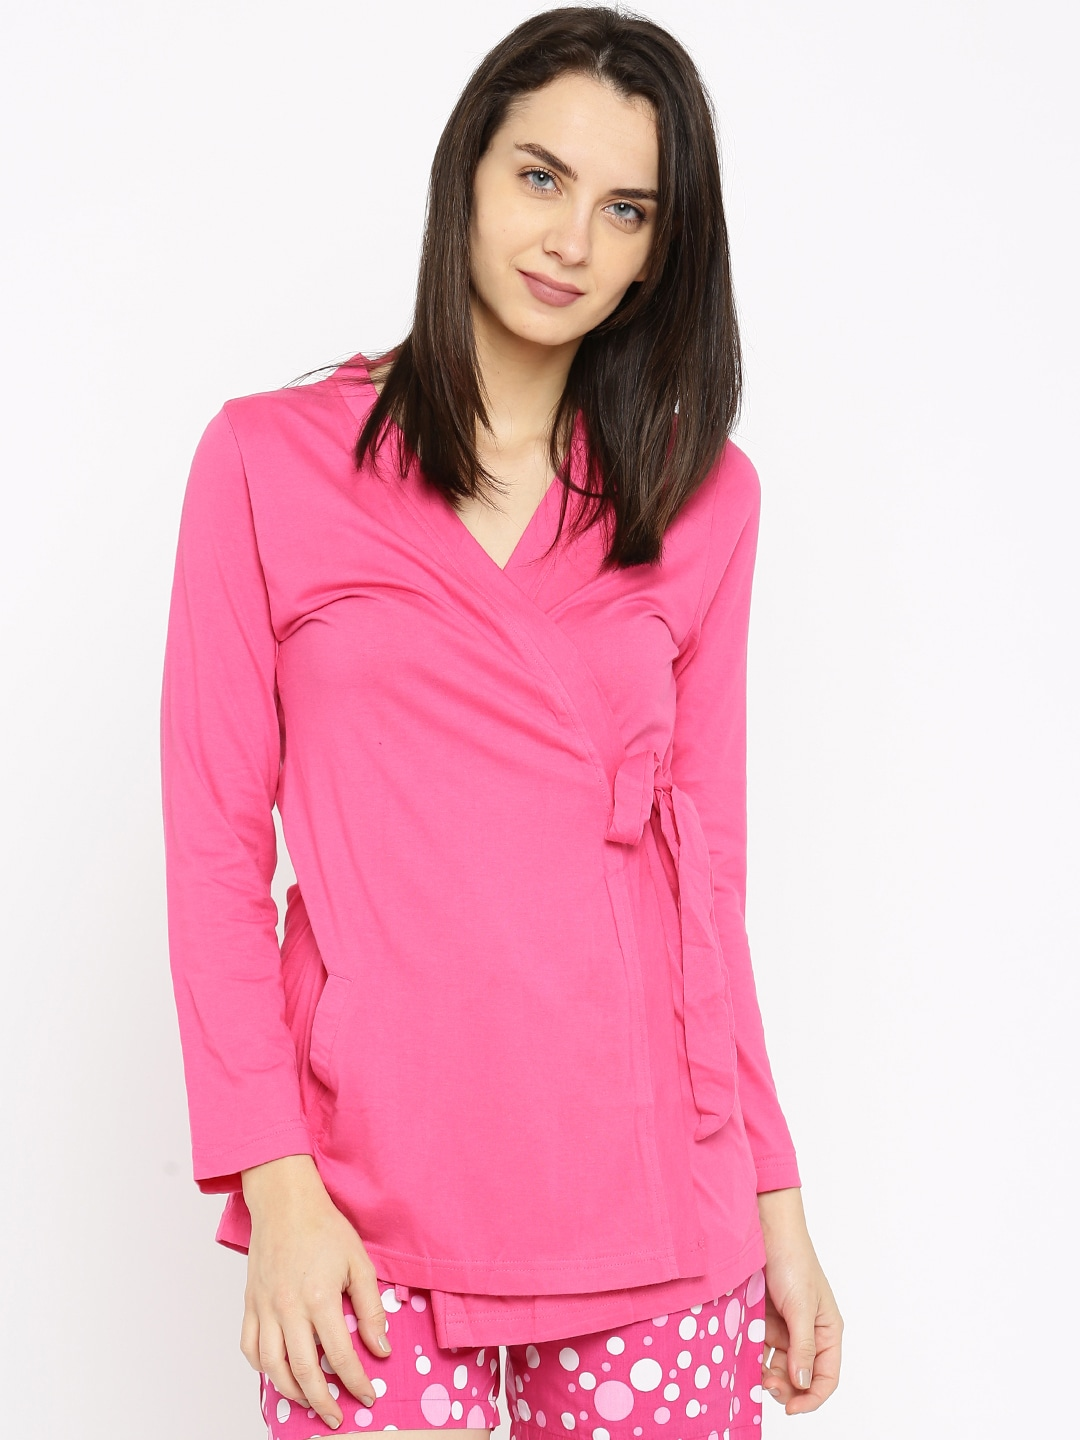 Kanvin Pink Wrap-Around Lounge Top KSS16287A image